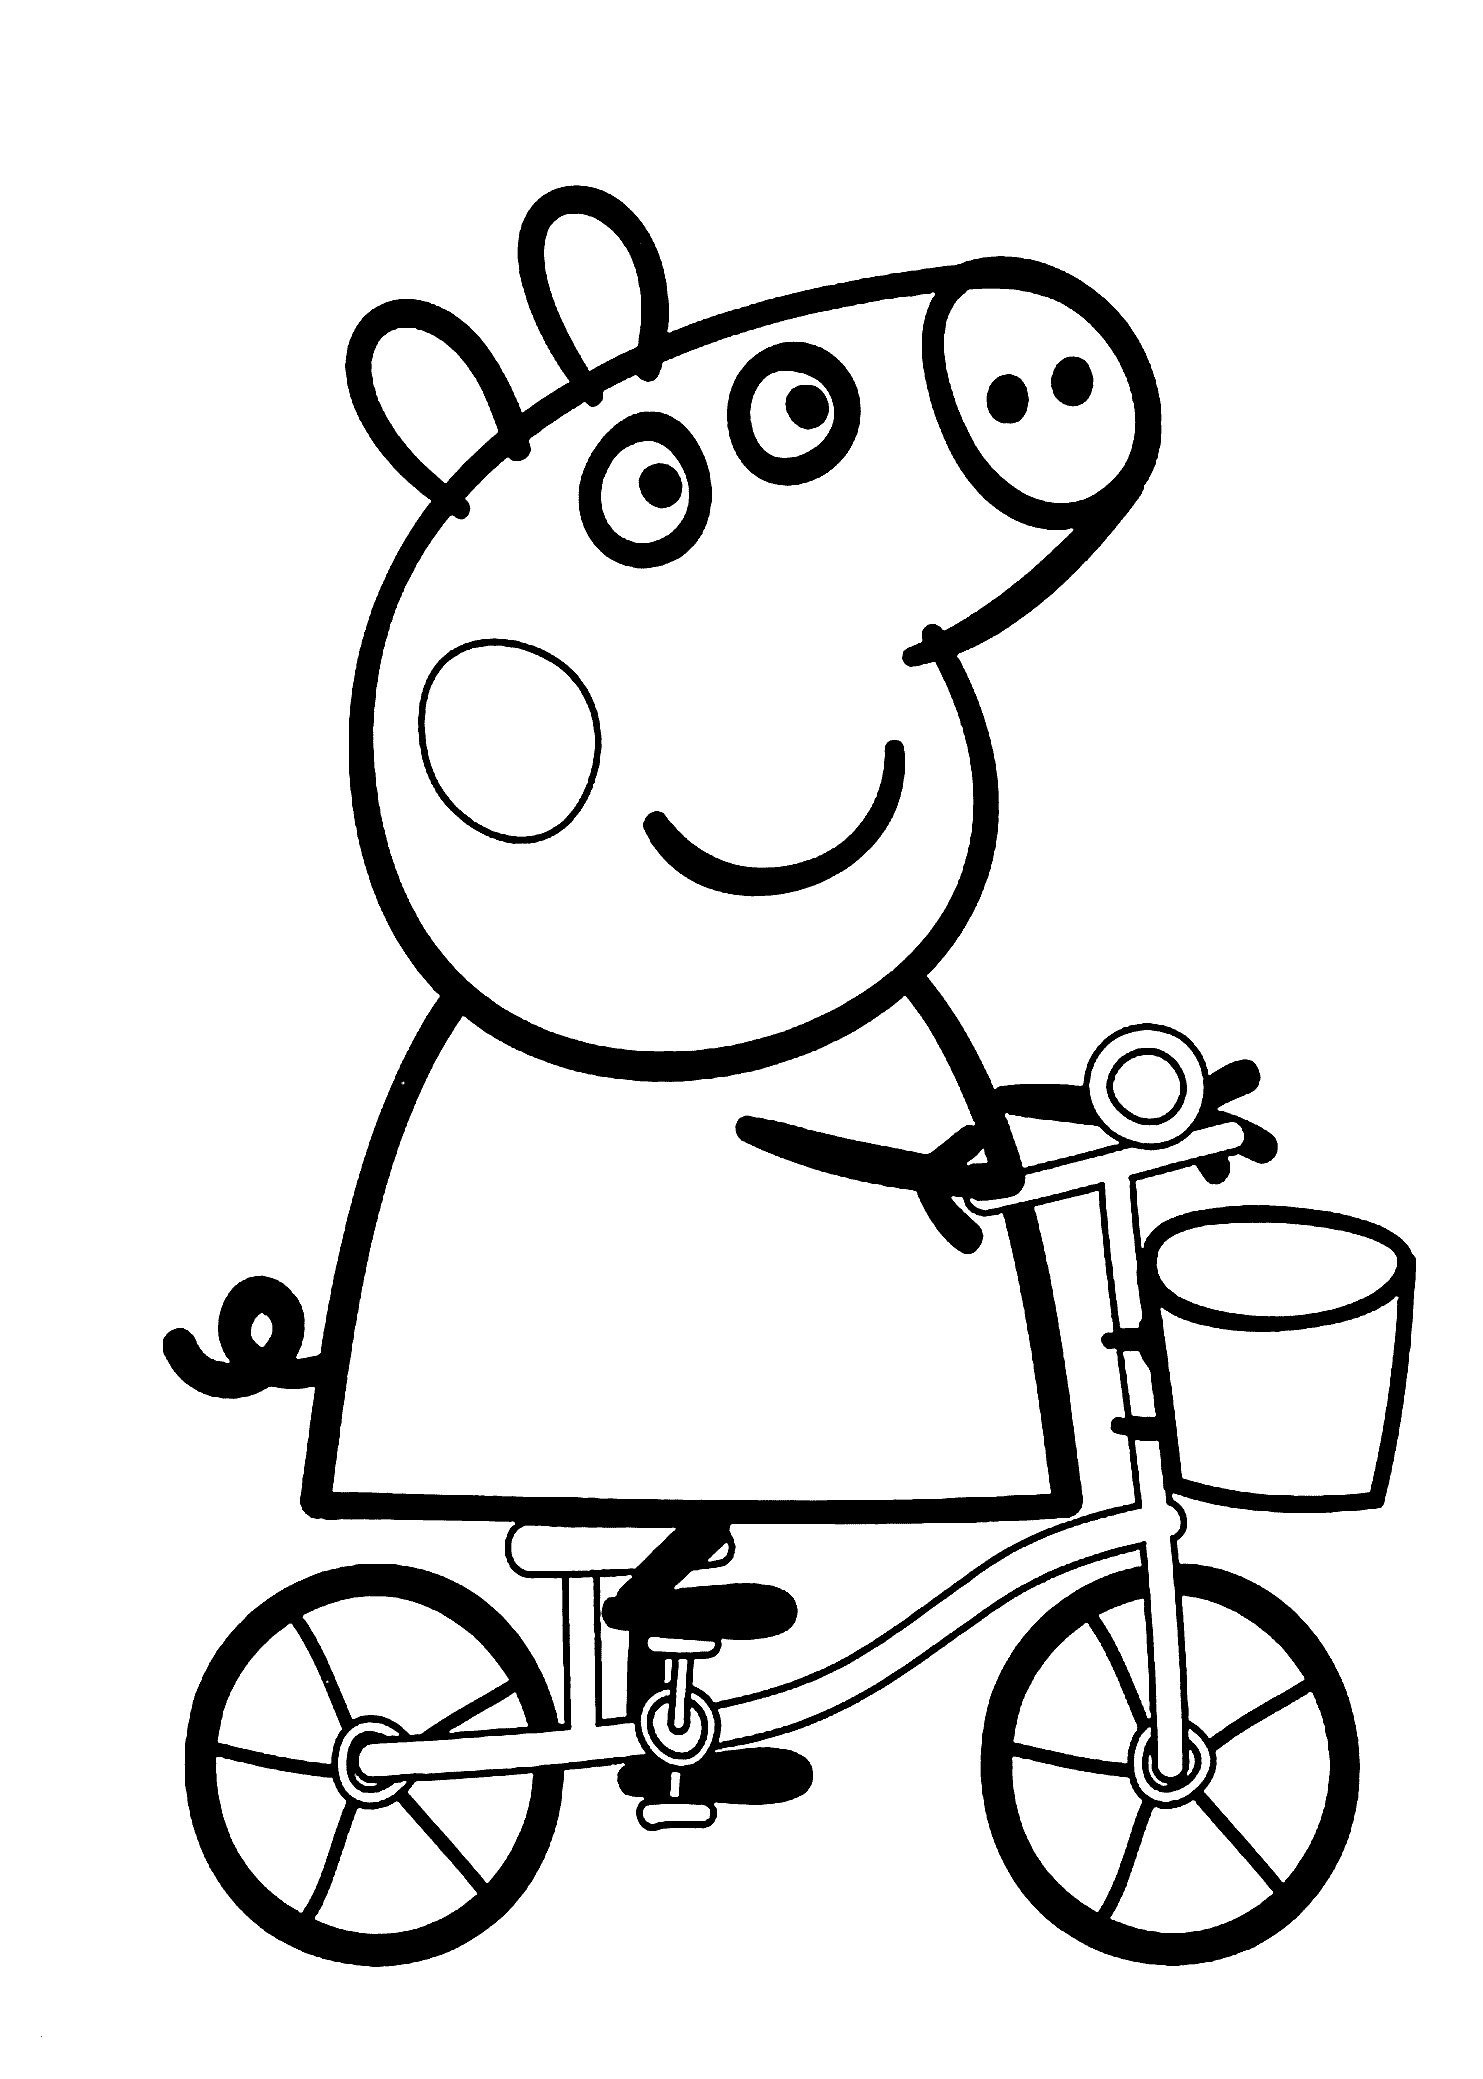 1483x2079 Peppa Pig Coloring New Image Peppa Pig Movie Coloring Book Pages